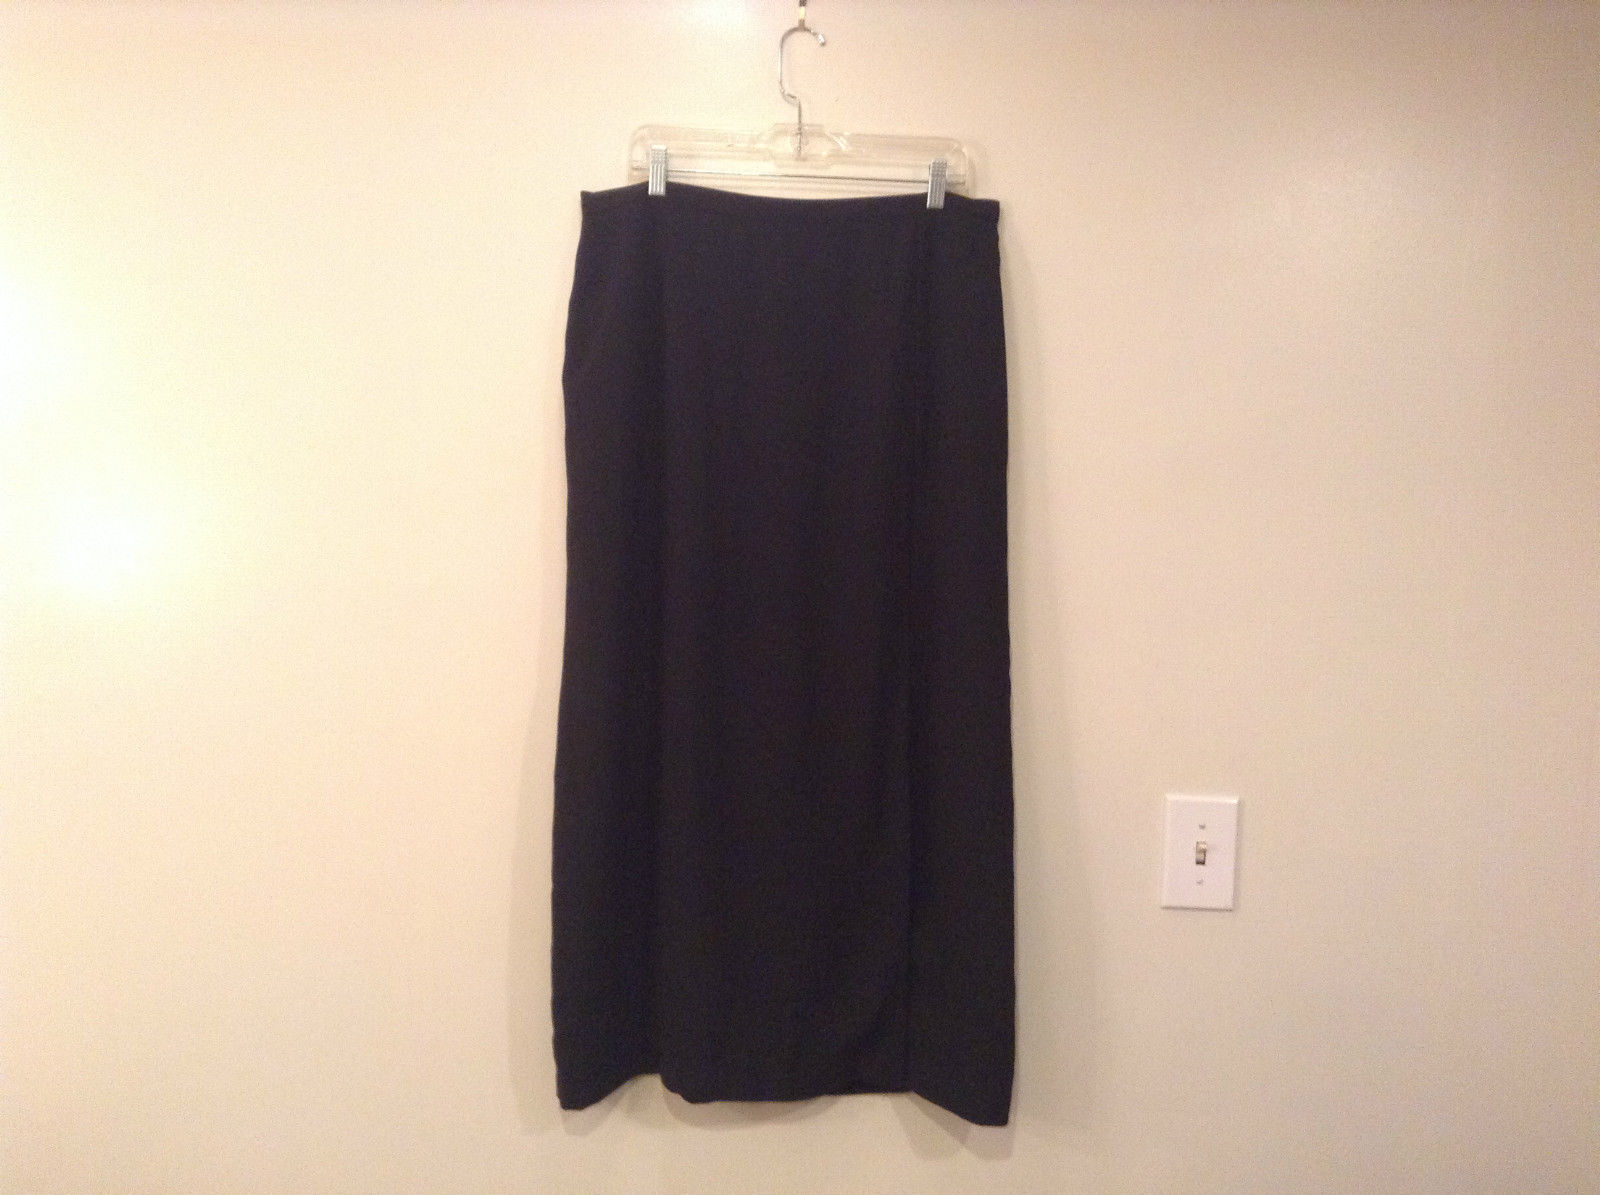 Black Fully Lined Rafael Skirt Back Zipper Left Front Slit No Pockets Size 18